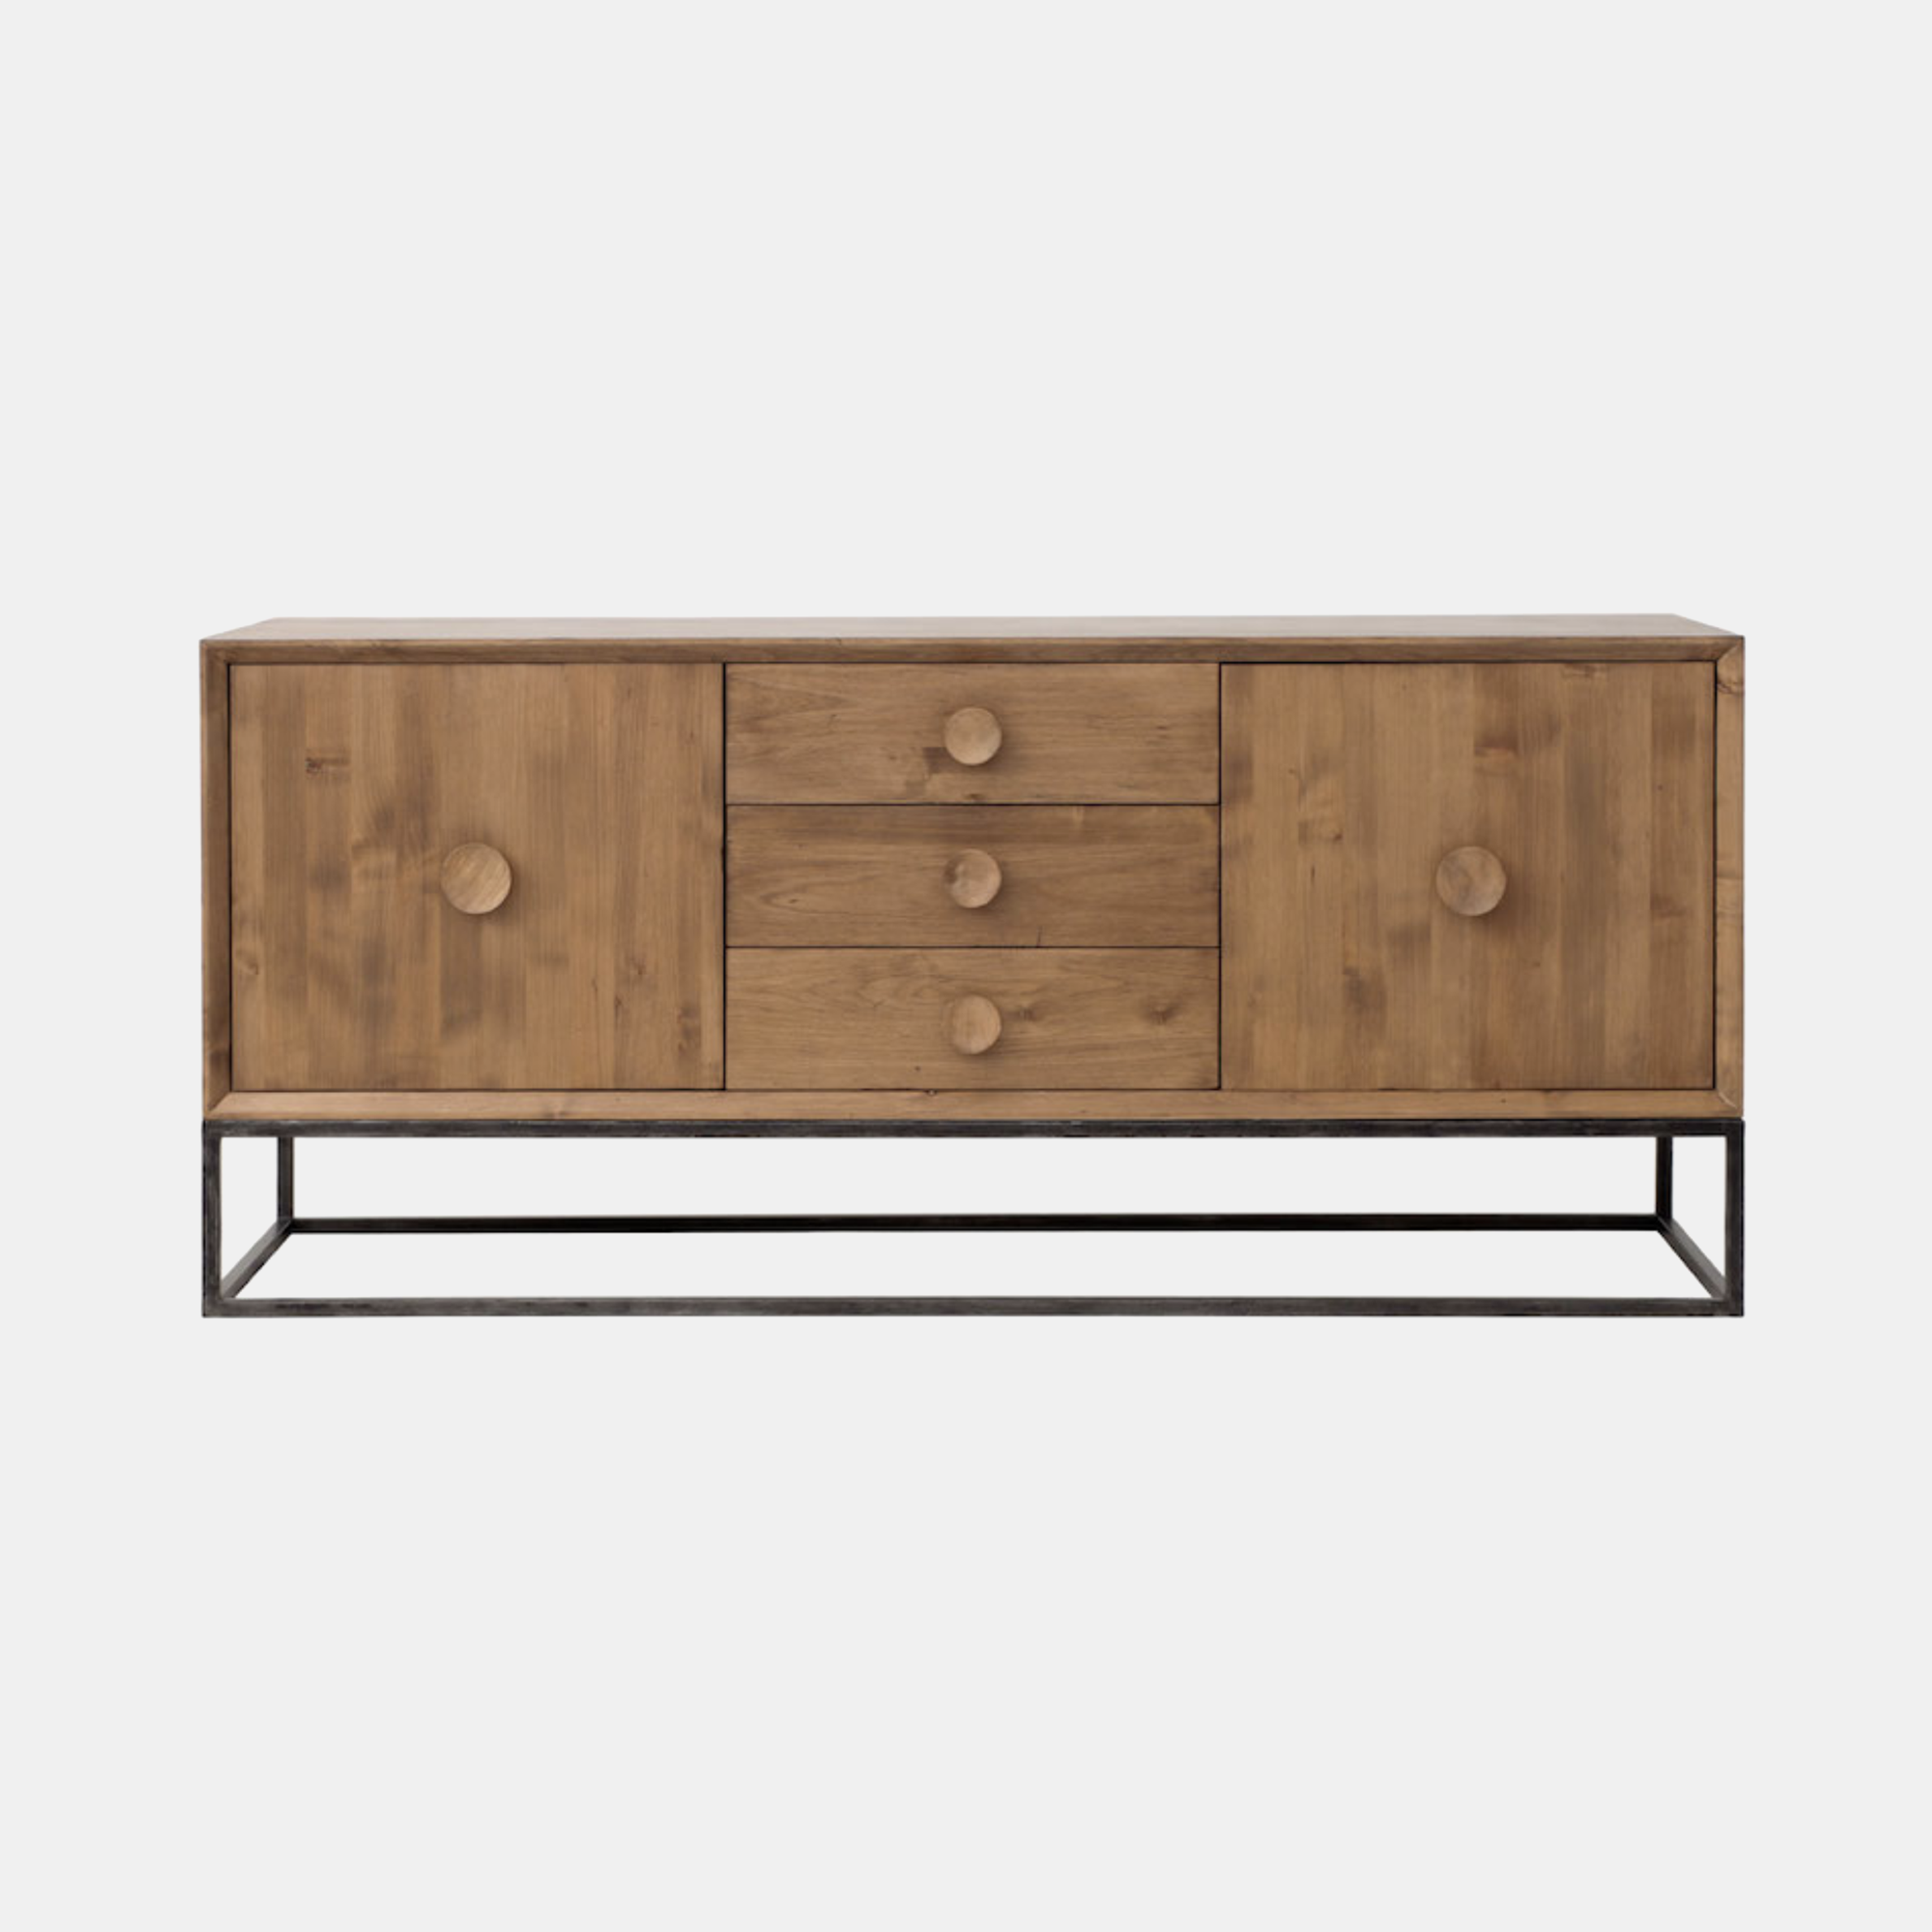 "Spencer Entertainment Console  66""l x 21""d x 29""h Available in several wood and metal finishes. Also available as 3-drawer and 6-drawer dressers, 1-drawer and 2-drawer nightstands, and 4-door entertainment console. SKU2398RFH"